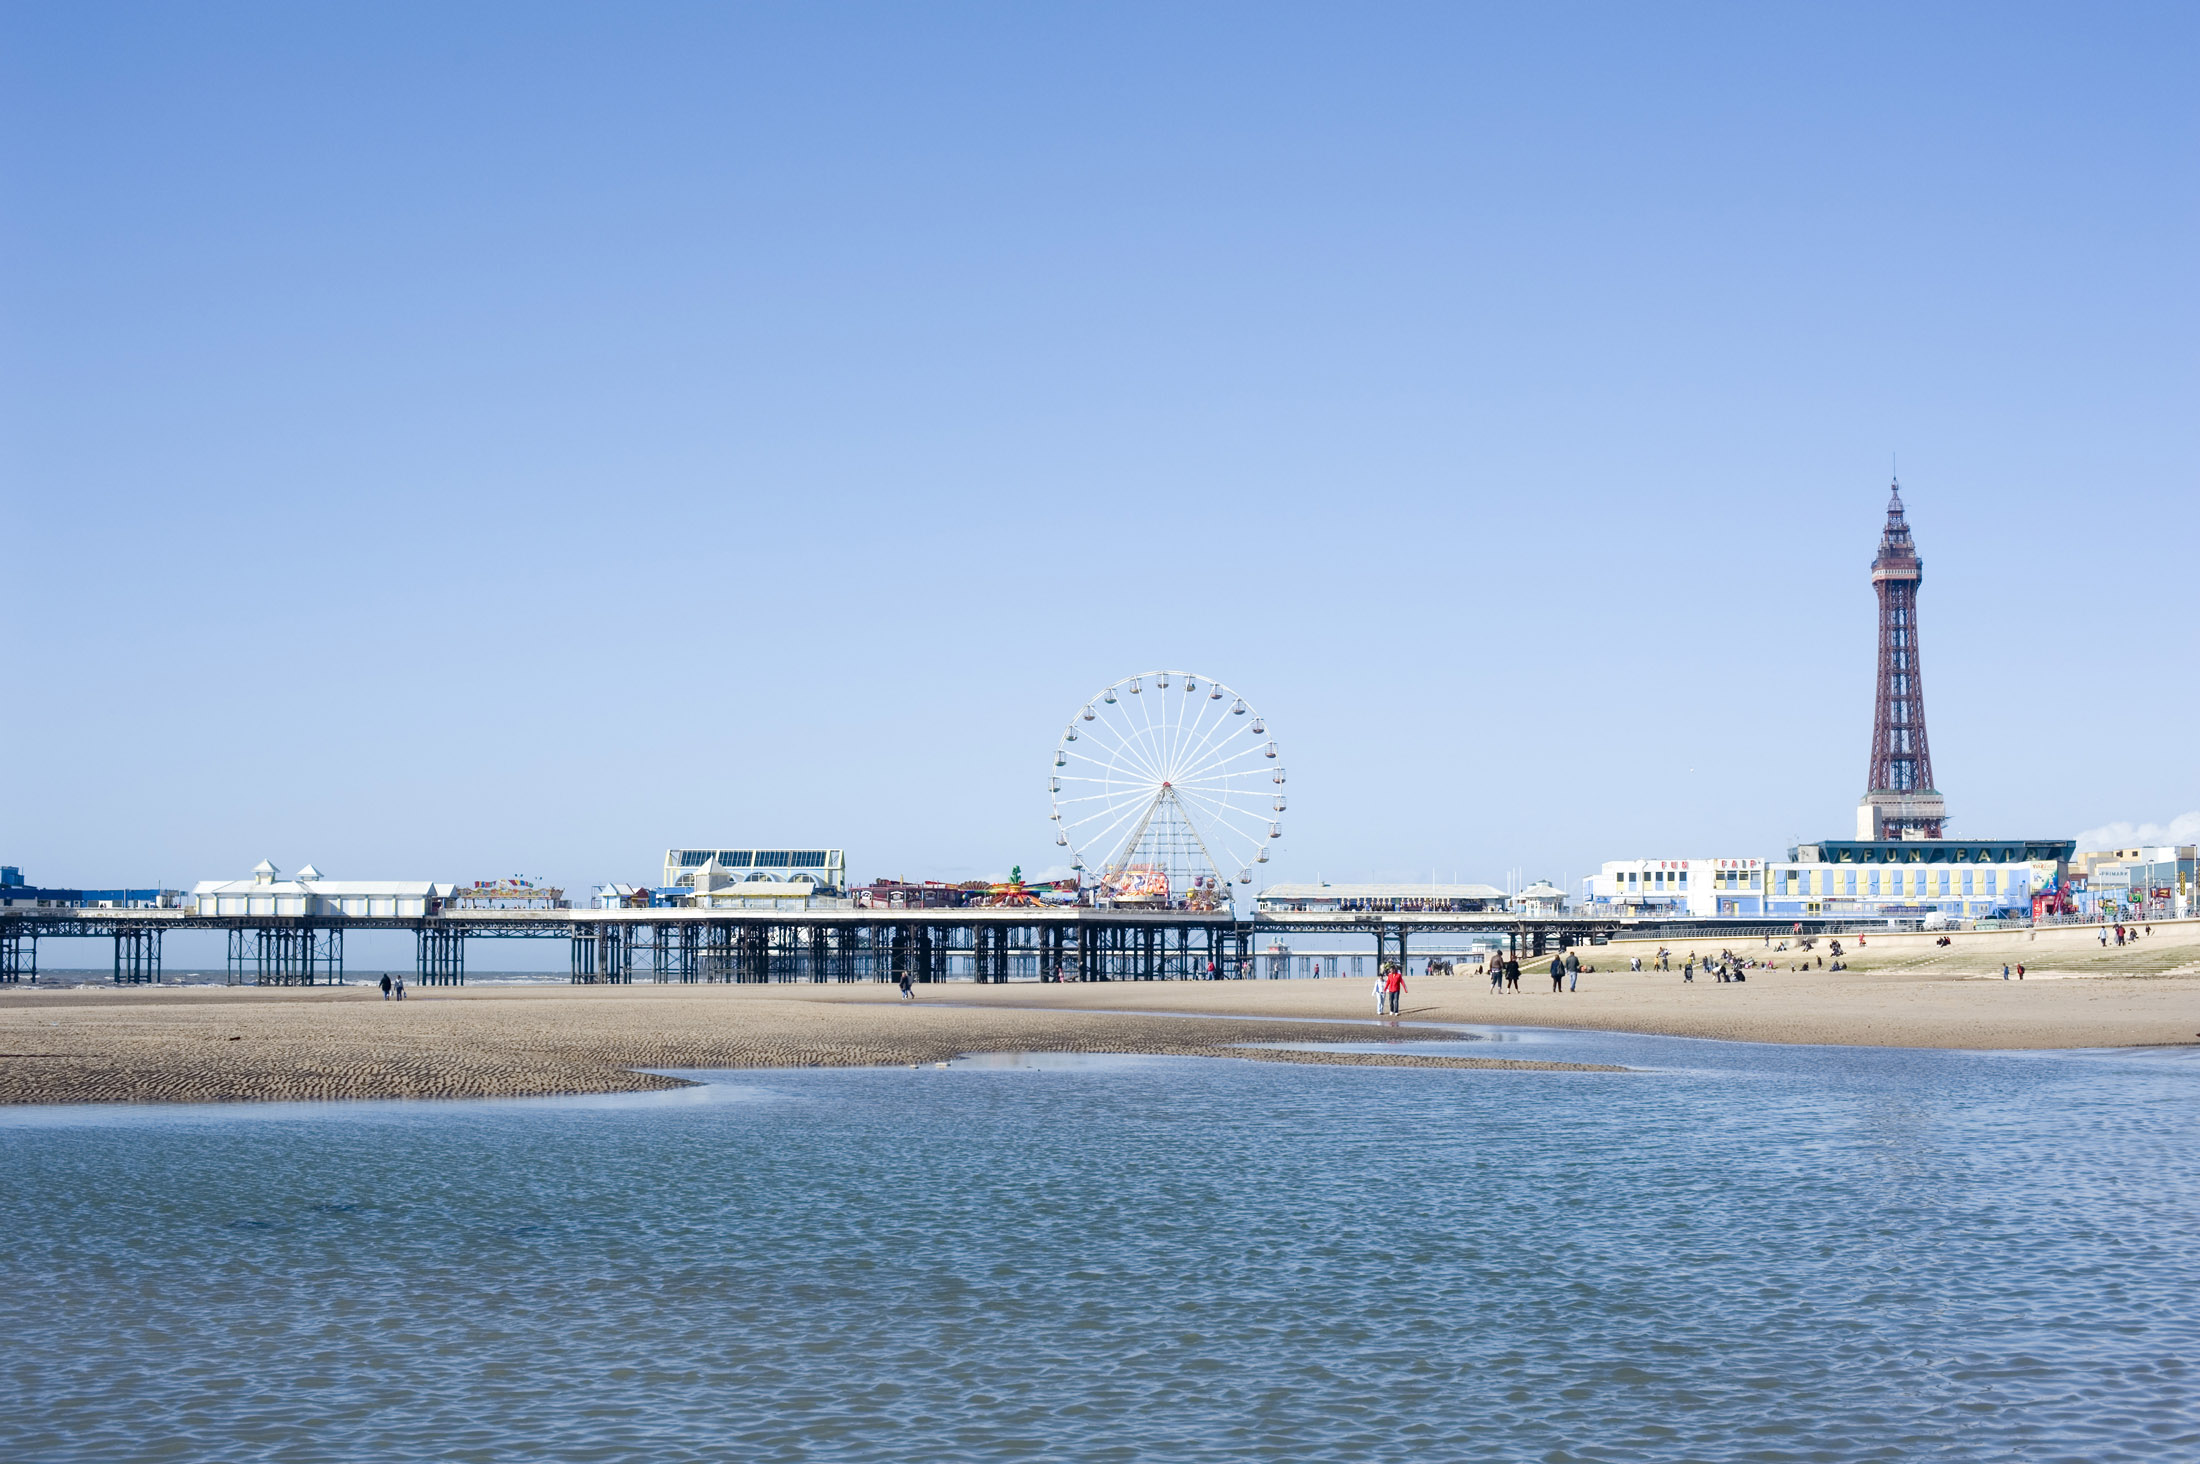 blackpools central pier with ferris wheel